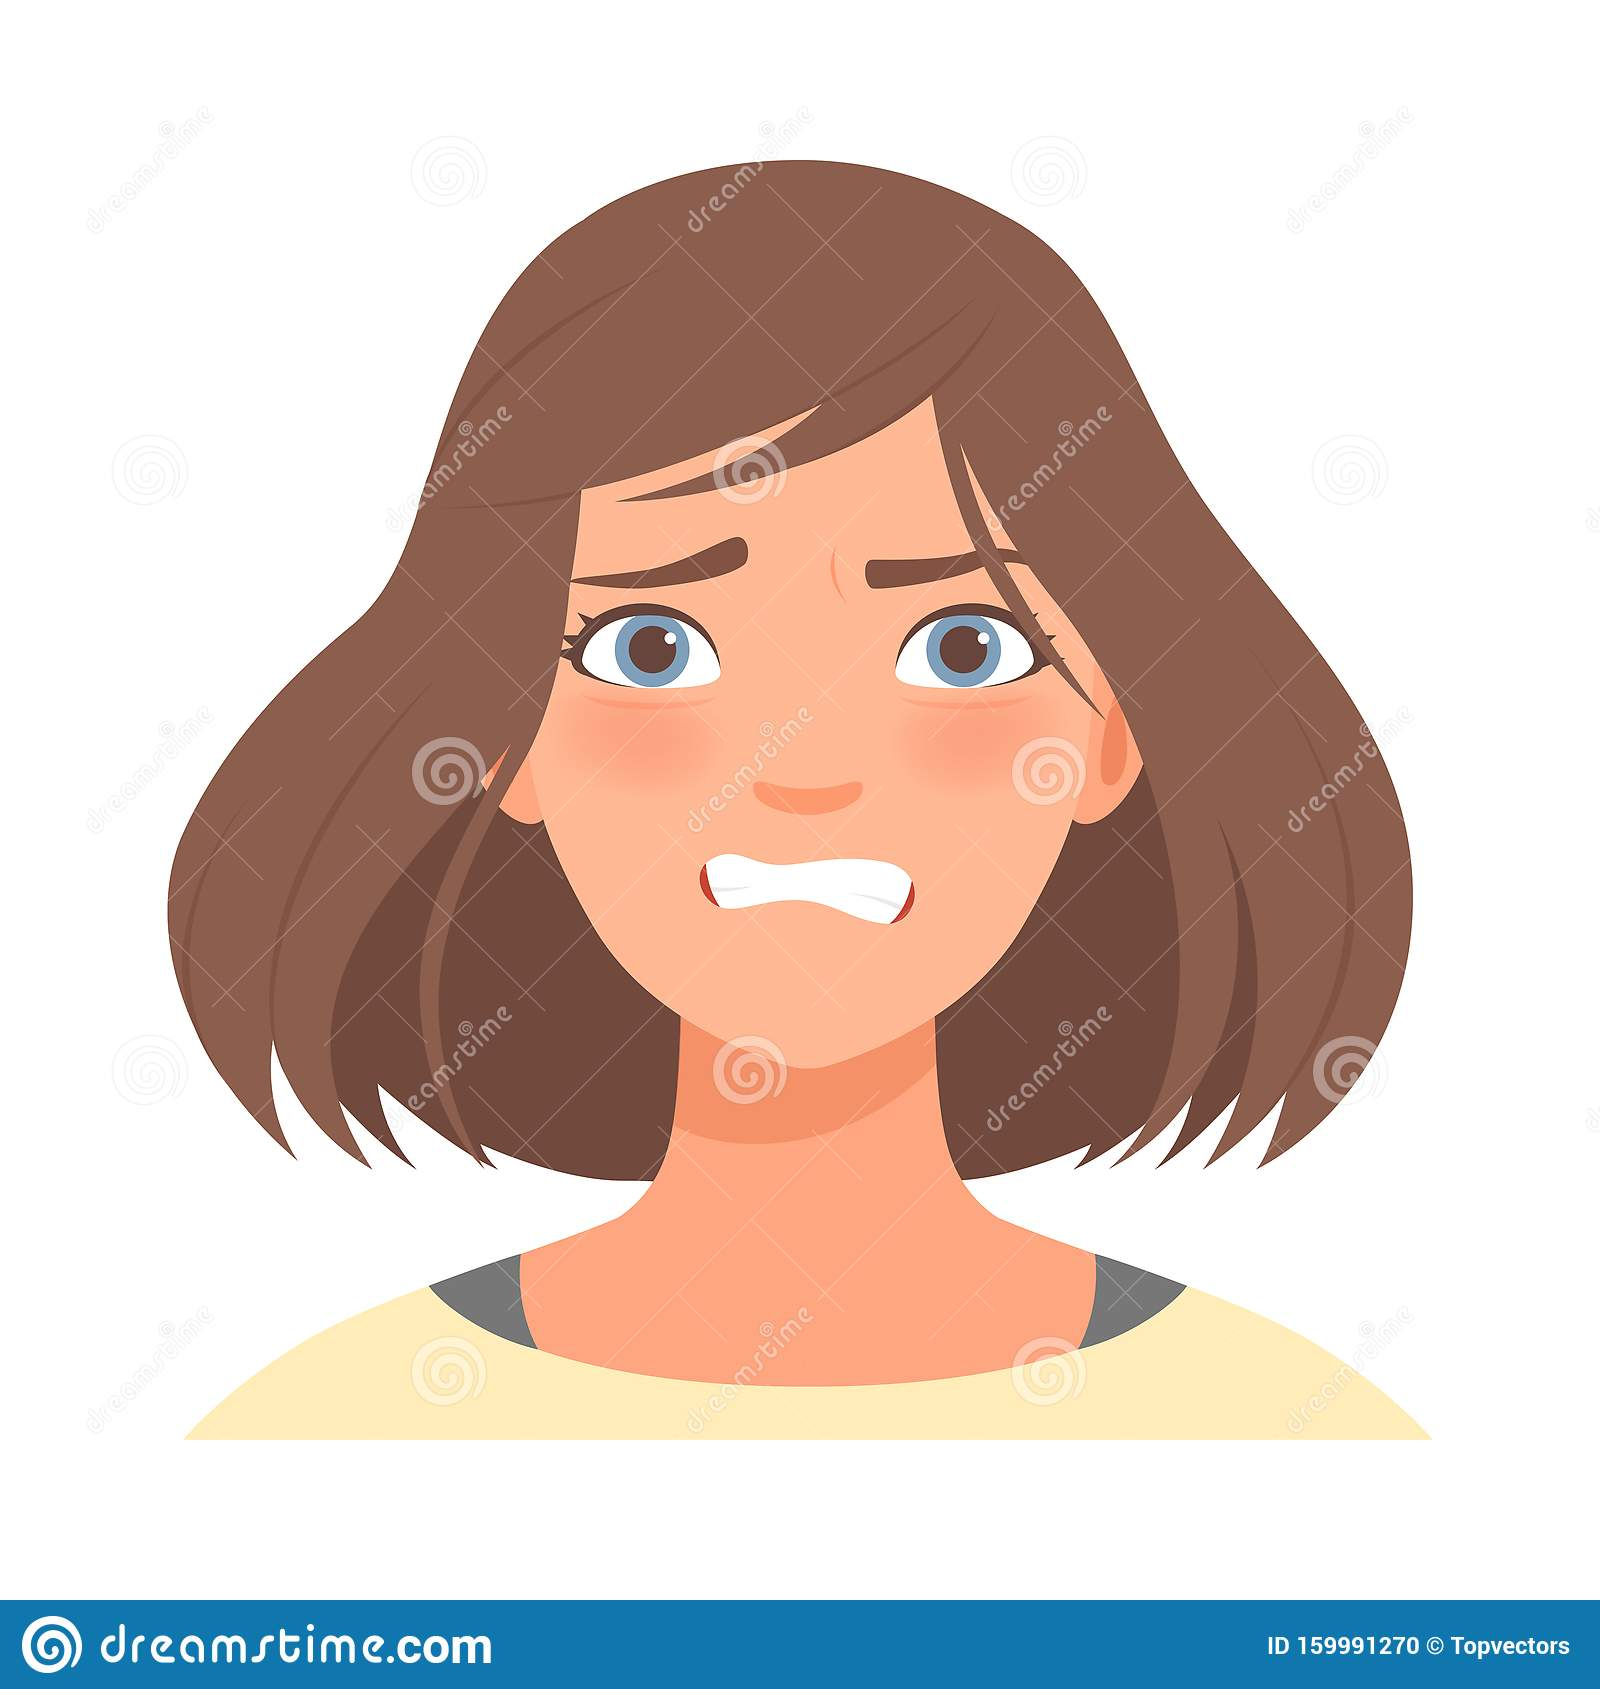 Anger On The Face Of A Cute Girl Vector Illustration Stock Vector Illustration Of Illustration Emotional 159991270